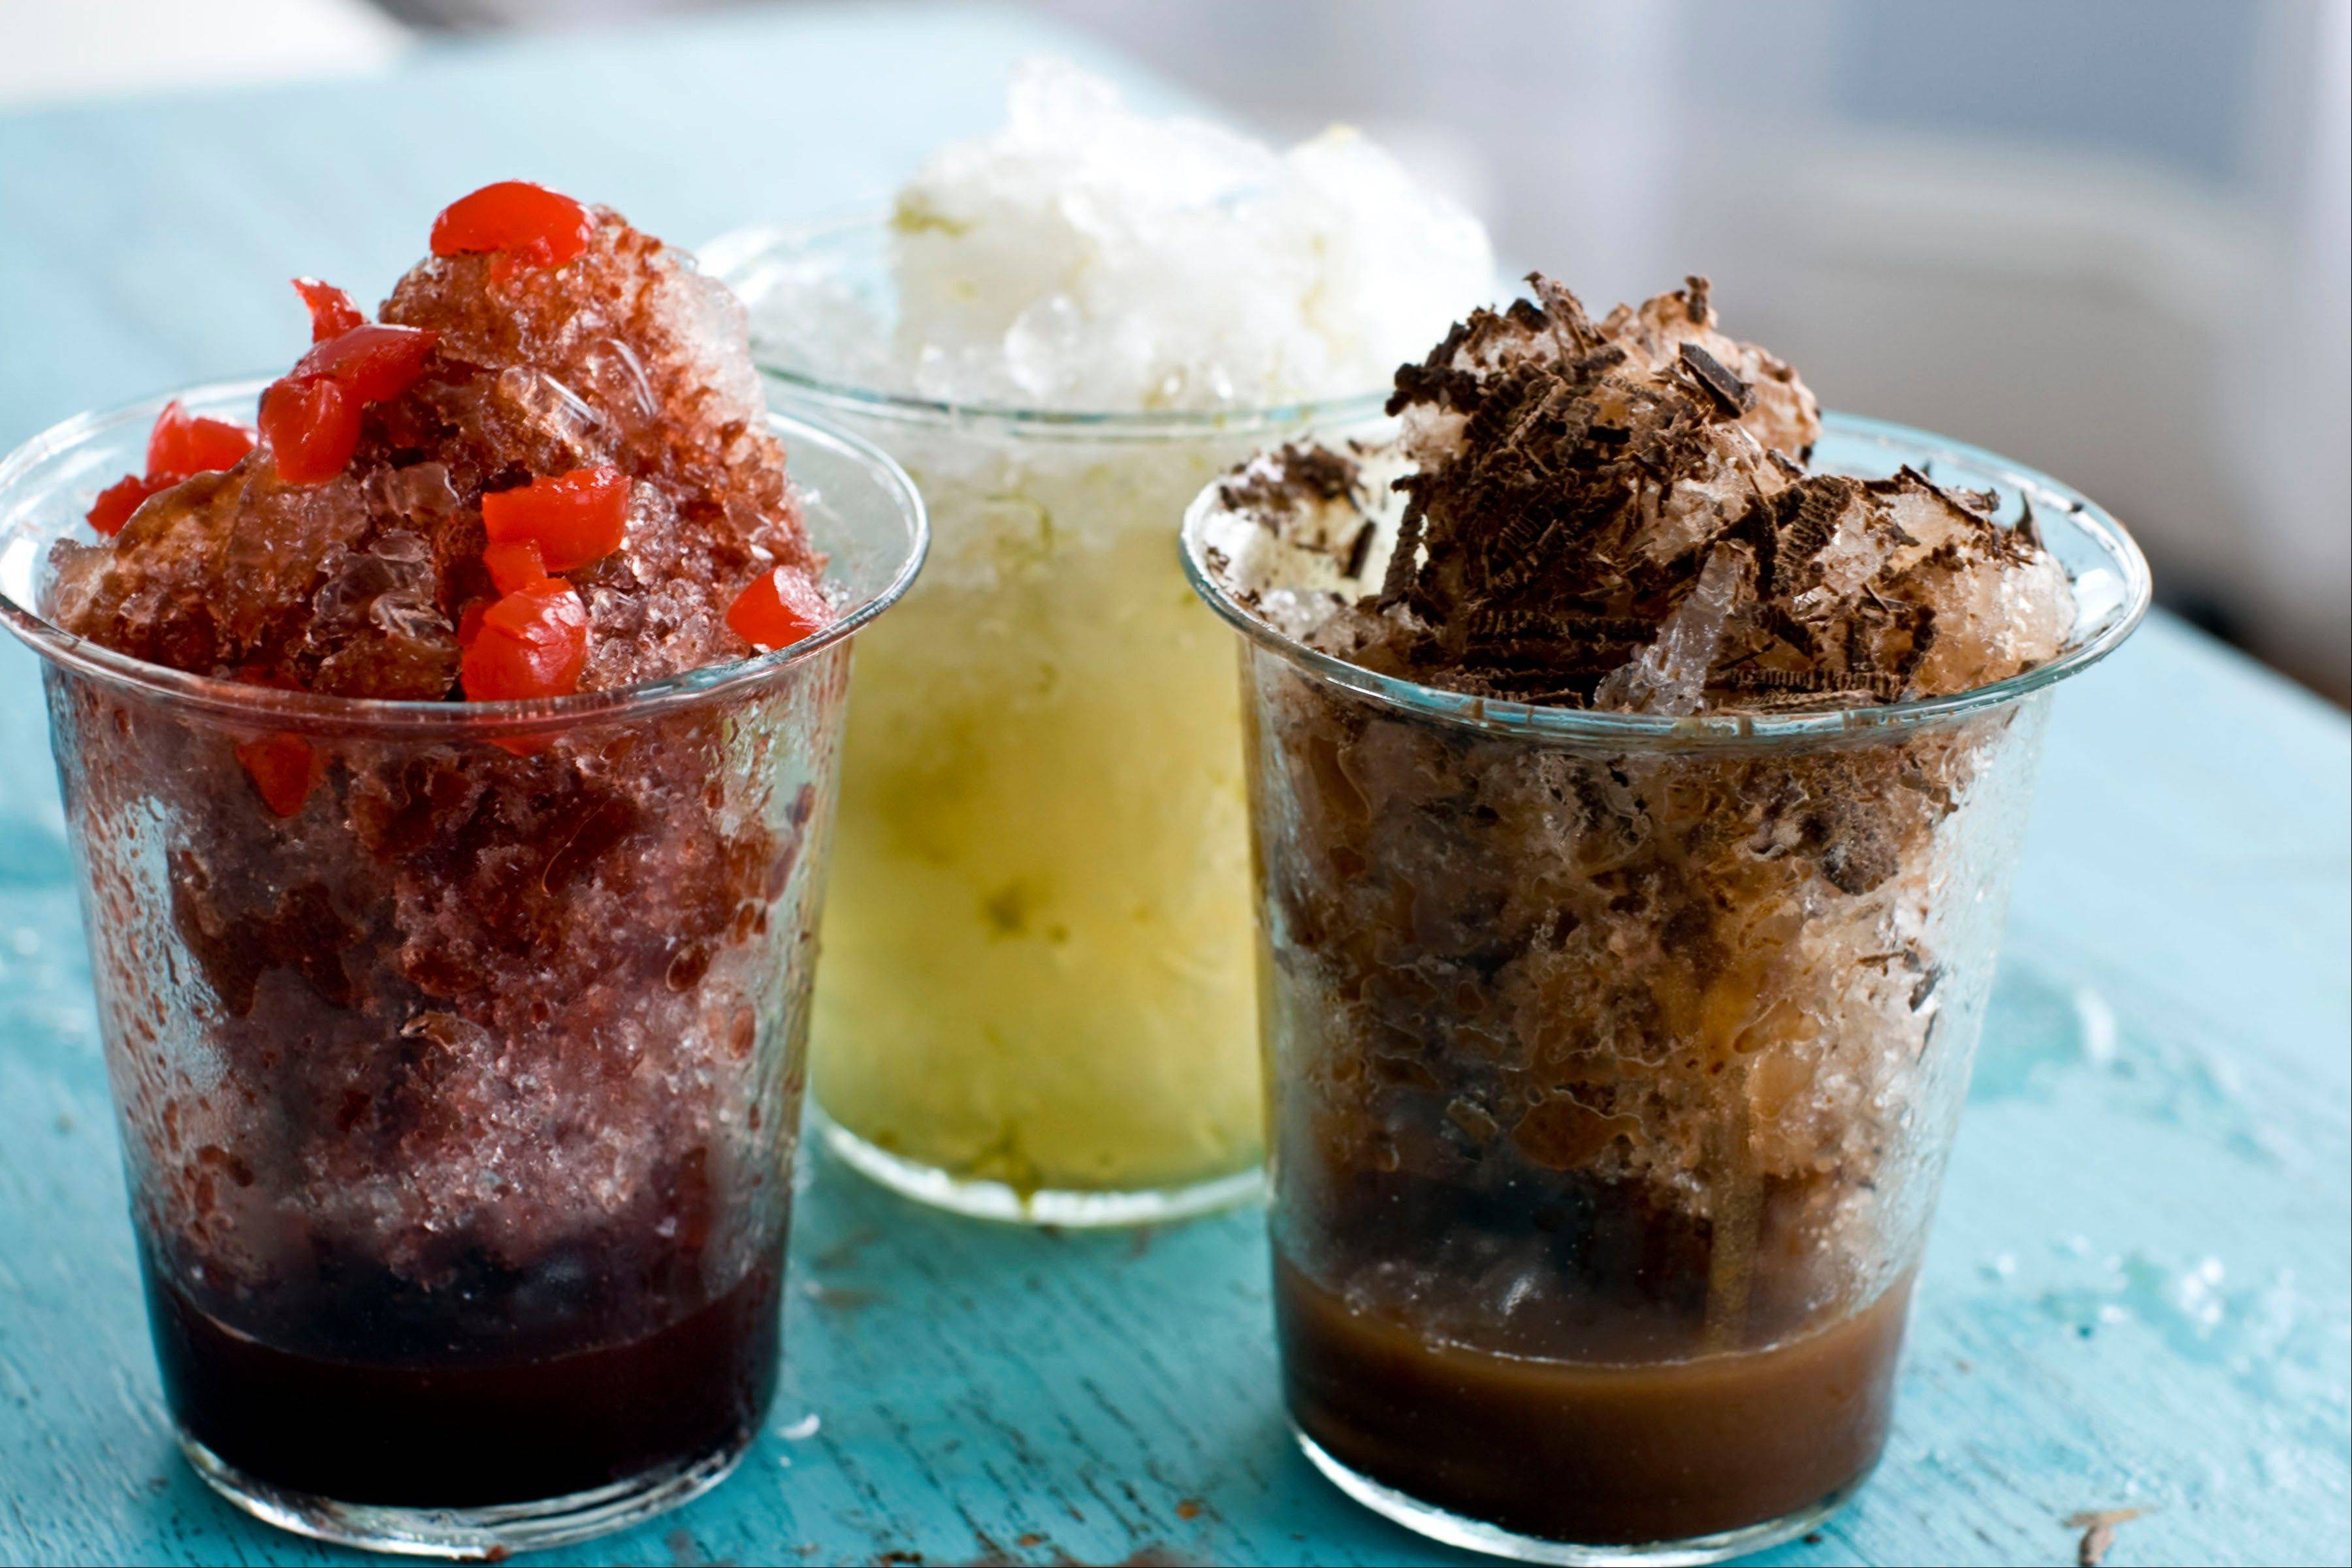 Cherry Cola Shaved Ice, left, Mocha Shaved Ice, right, and Coconut-Lime Shaved Ice